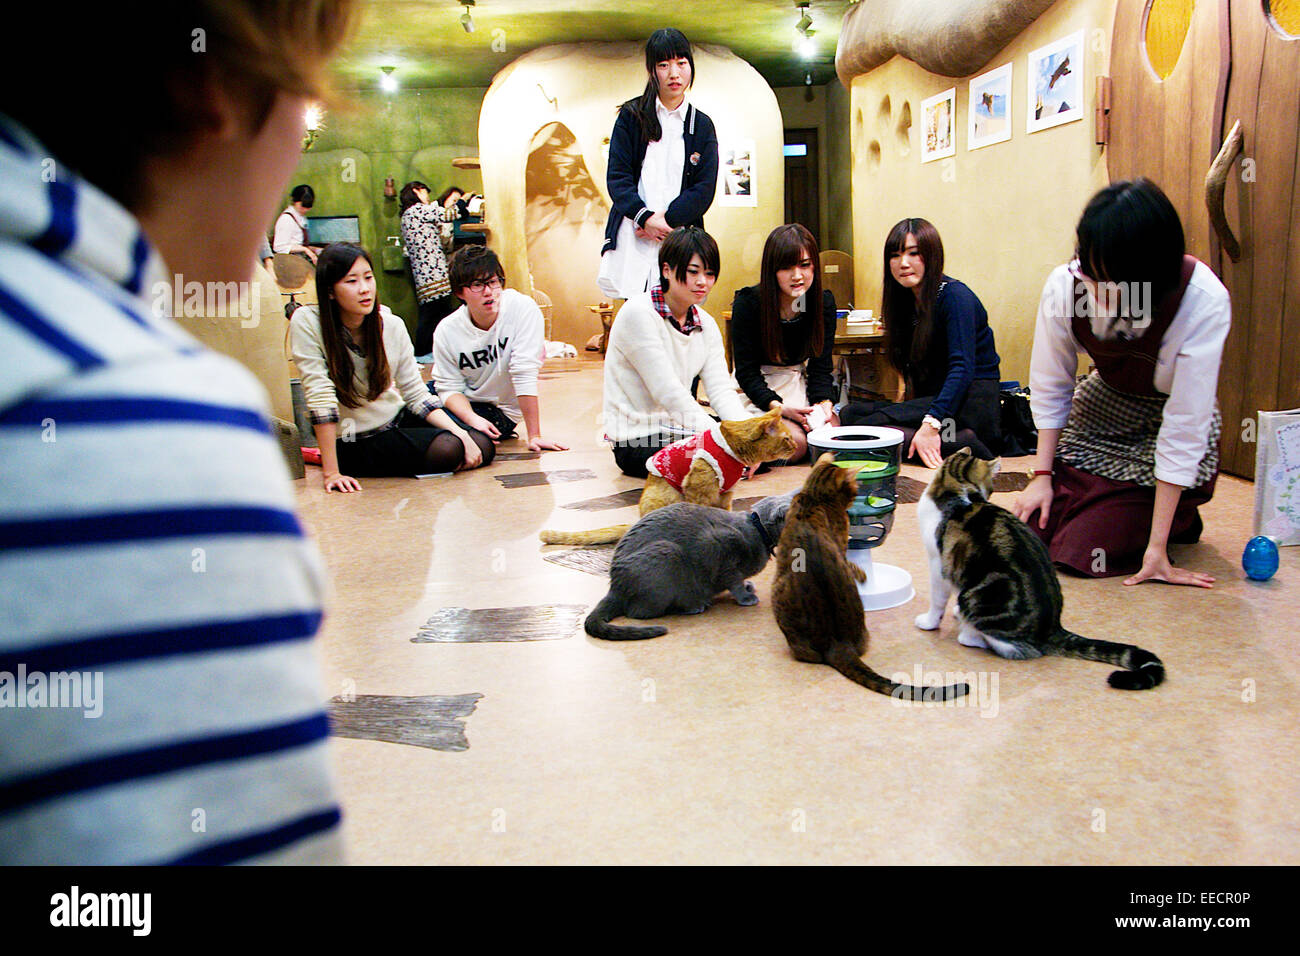 Tokyo, Japan. 15th January, 2015. Customers enjoy relaxing with cats at the 'Temari No Uchi' Cat Cafe in - Stock Image